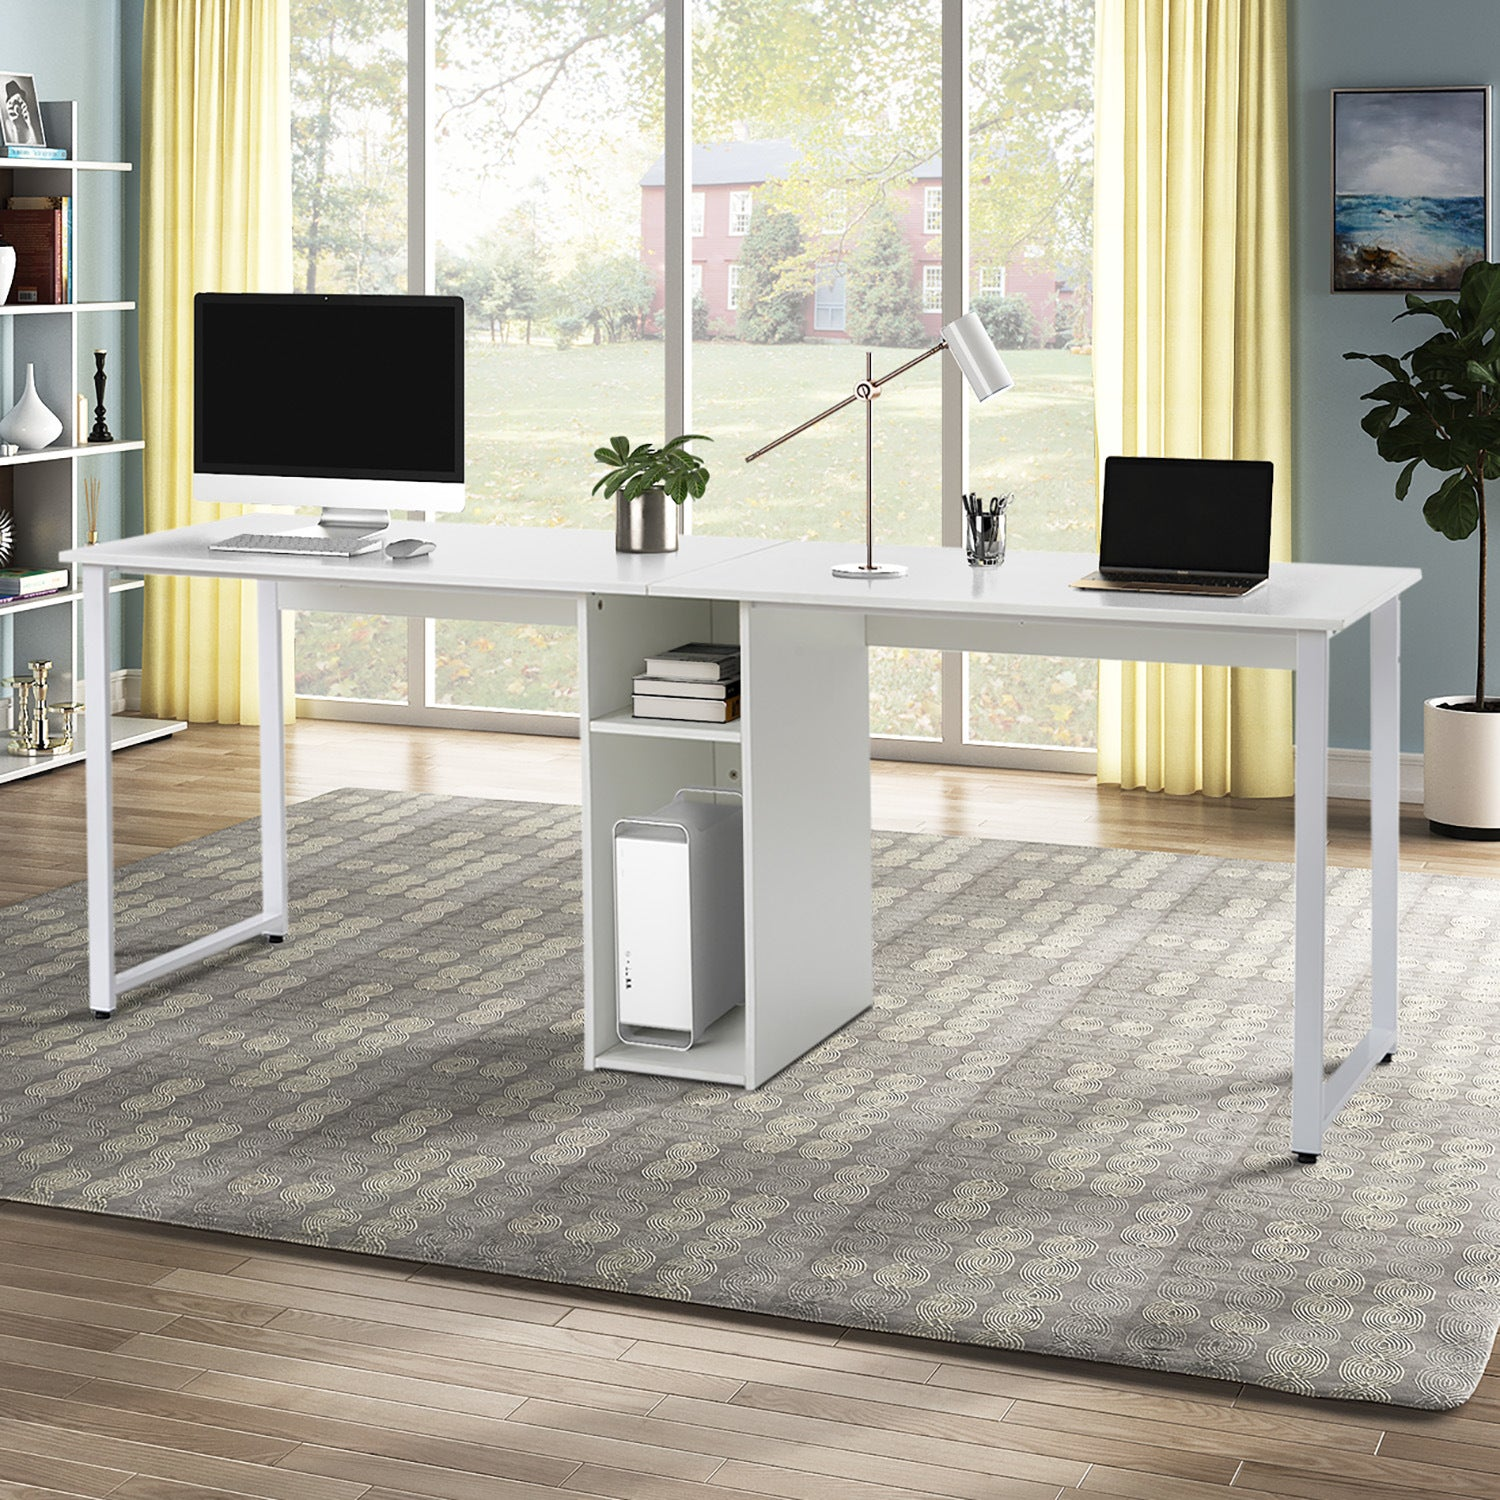 Ekkah 2 Person Computer Desk Qwork Furniture